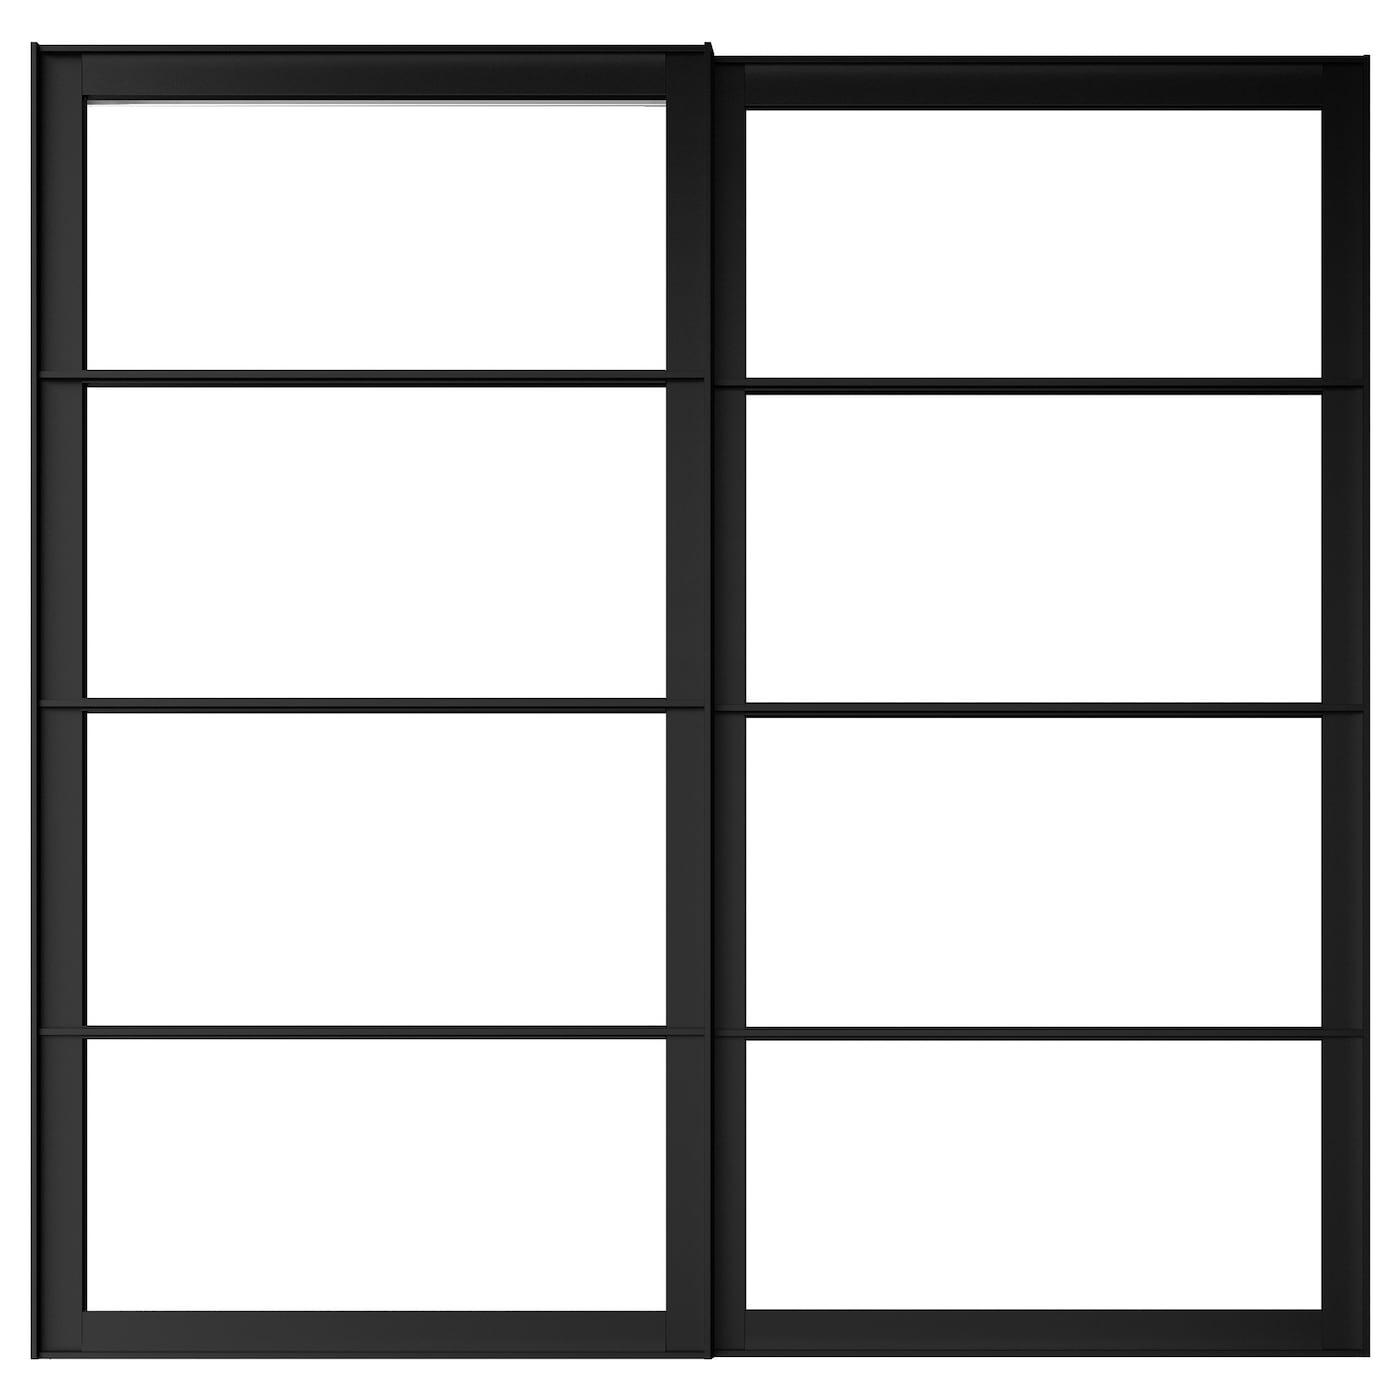 pax cadre porte coulissante 2pces noir 150x201 cm ikea. Black Bedroom Furniture Sets. Home Design Ideas